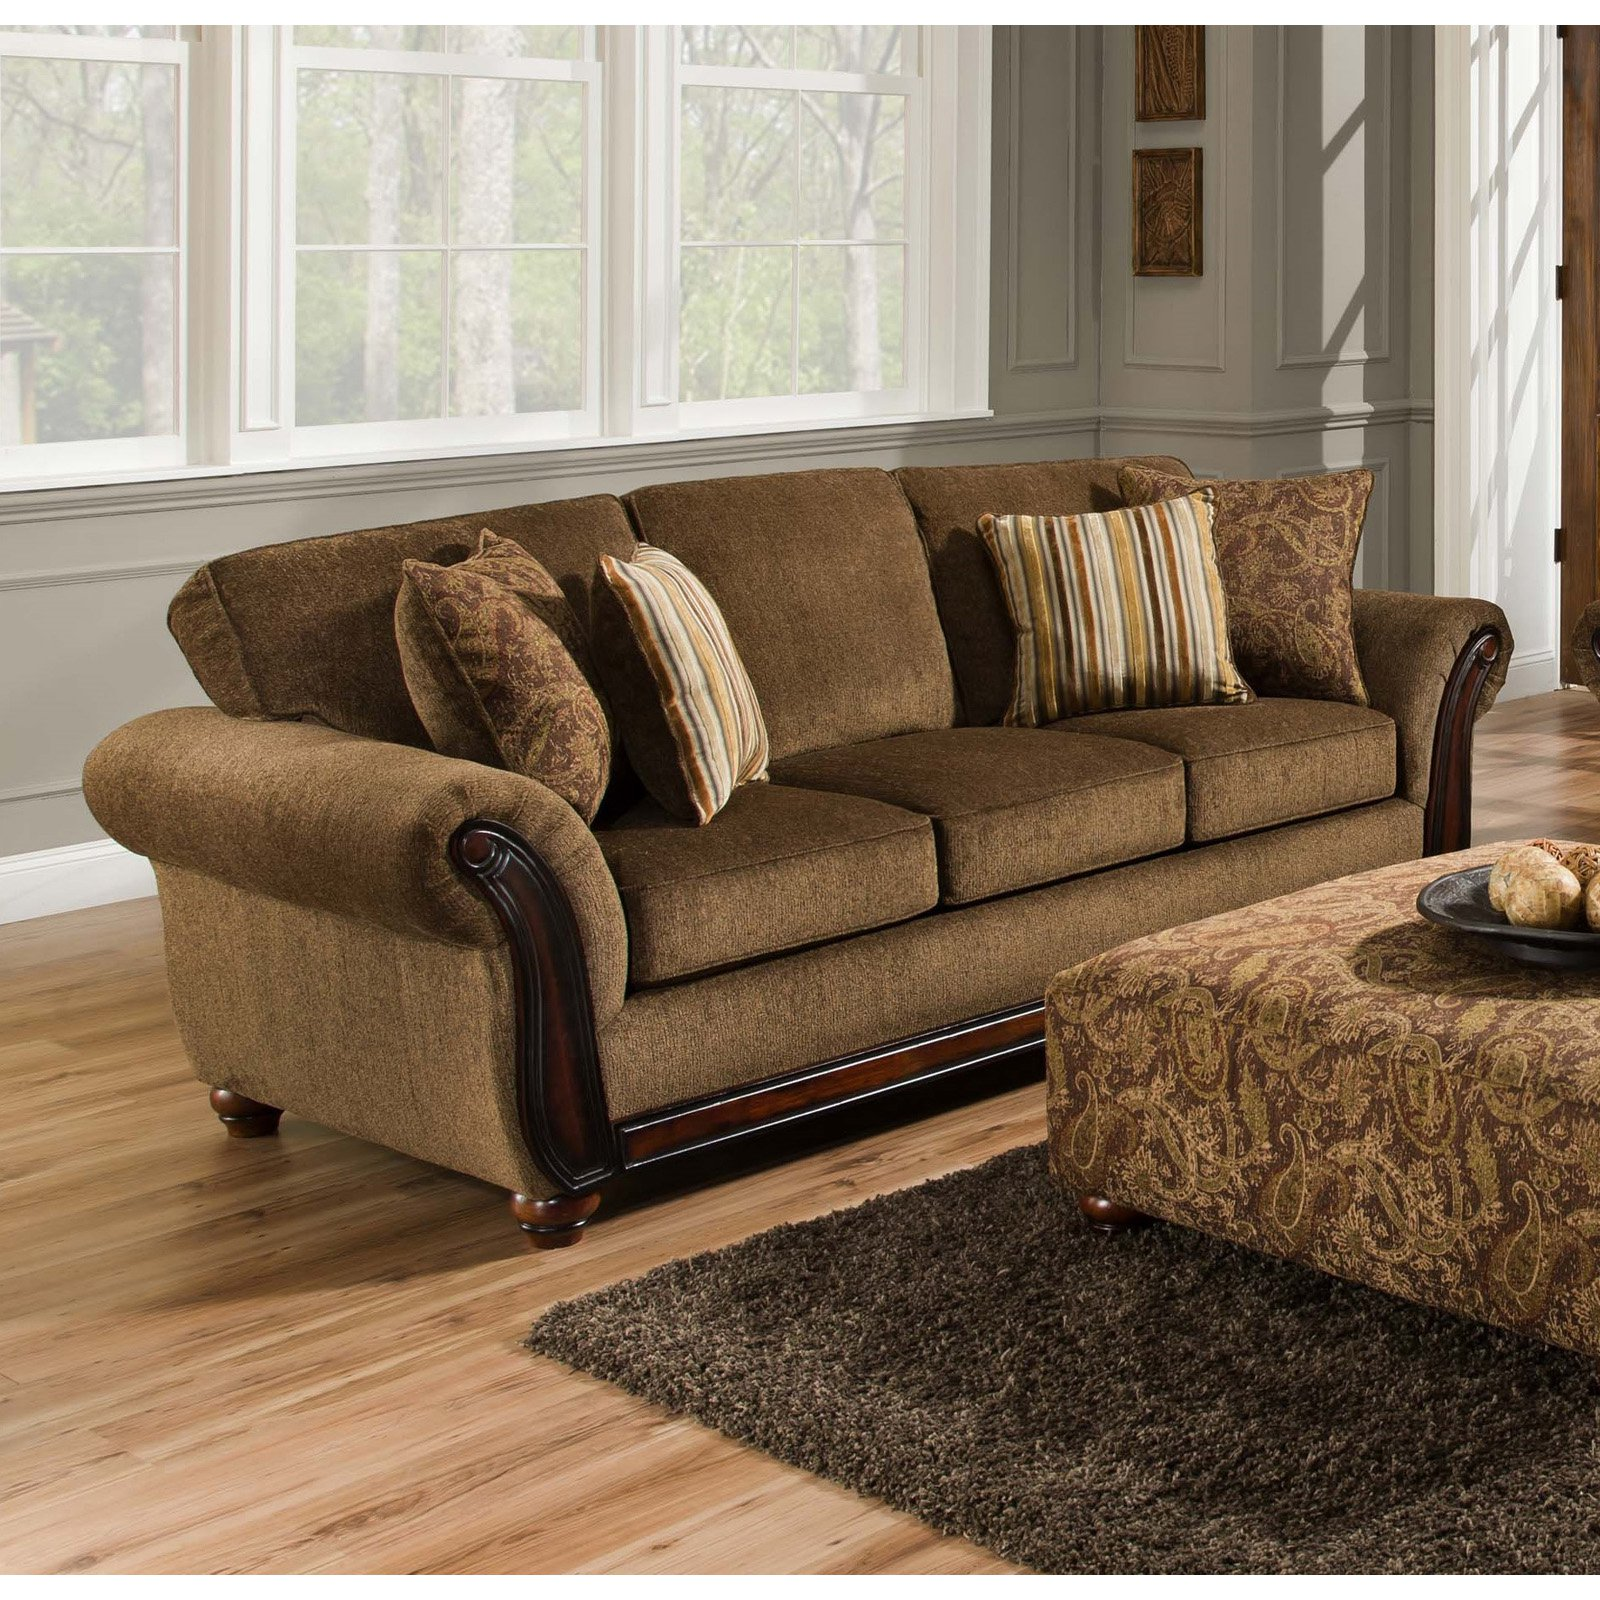 Fairfax Upholstered Sofa